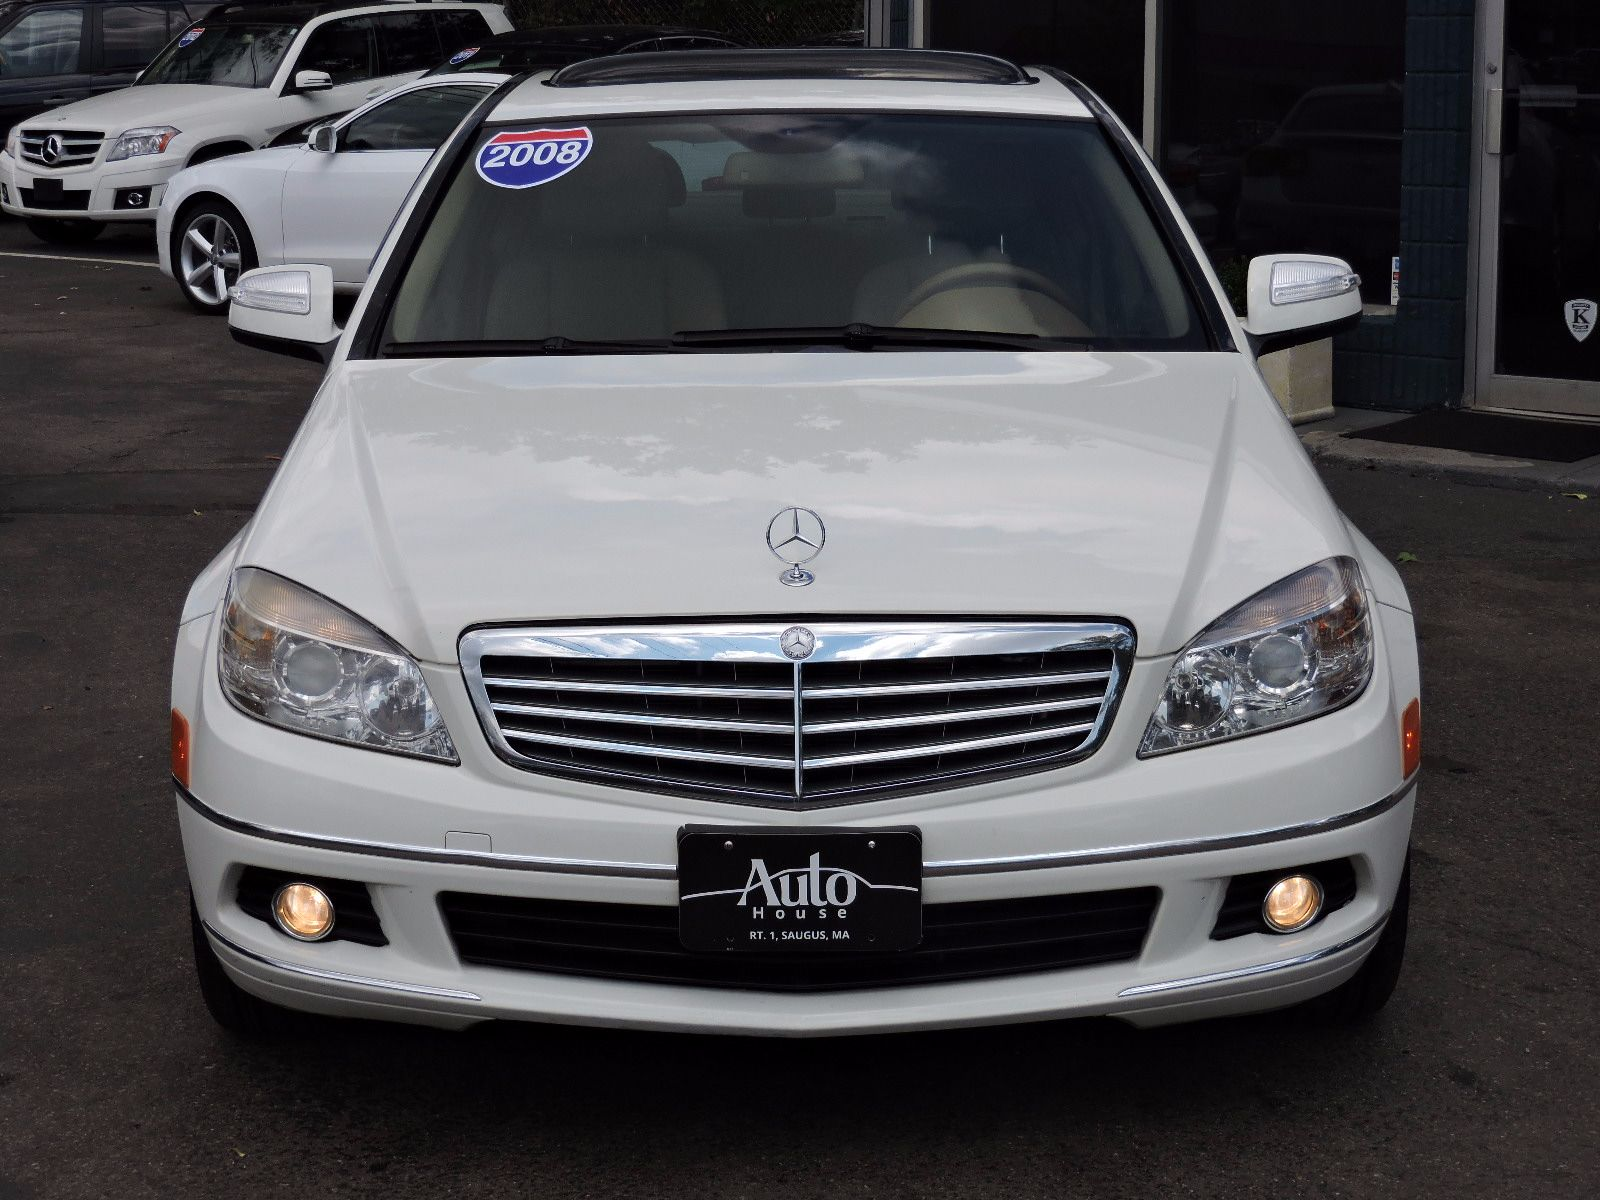 used 2008 mercedes benz c300 3 0l luxury at auto house usa saugus. Black Bedroom Furniture Sets. Home Design Ideas